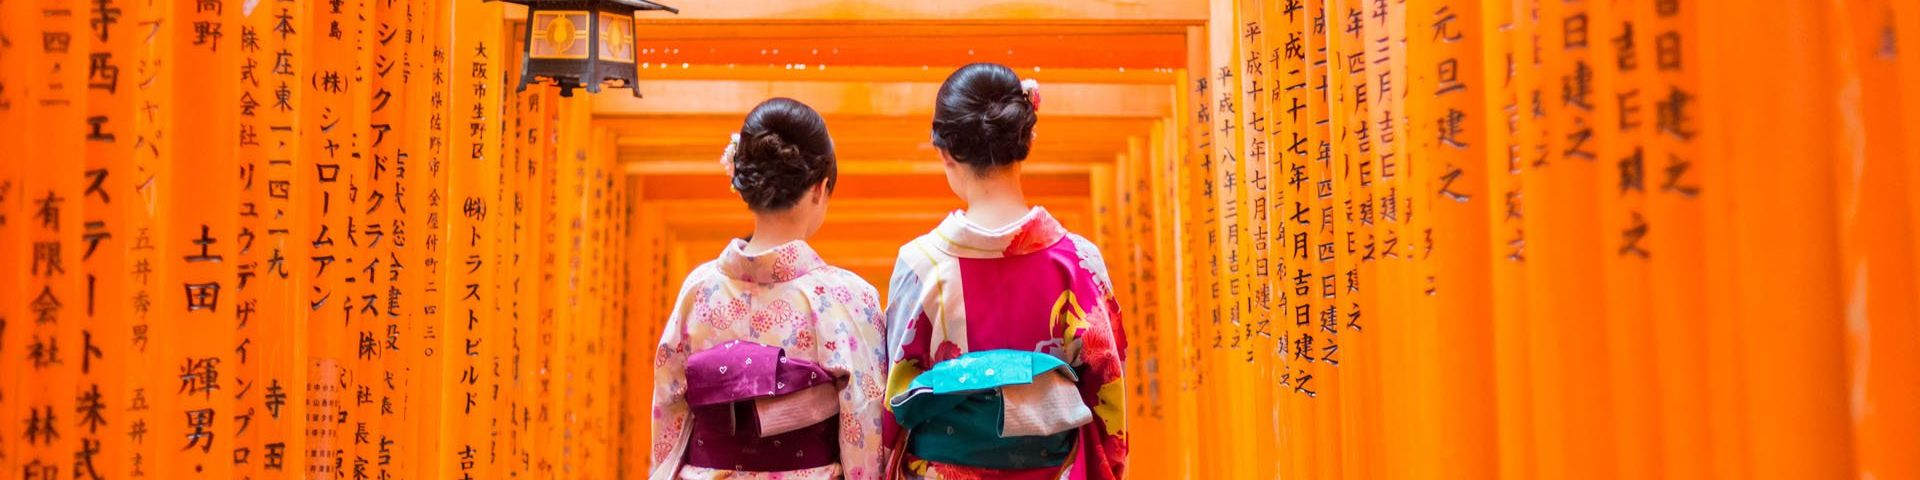 Two geisha stand in front of a red wooden tori gate at fushimi inari shrine in Kyoto, Japan